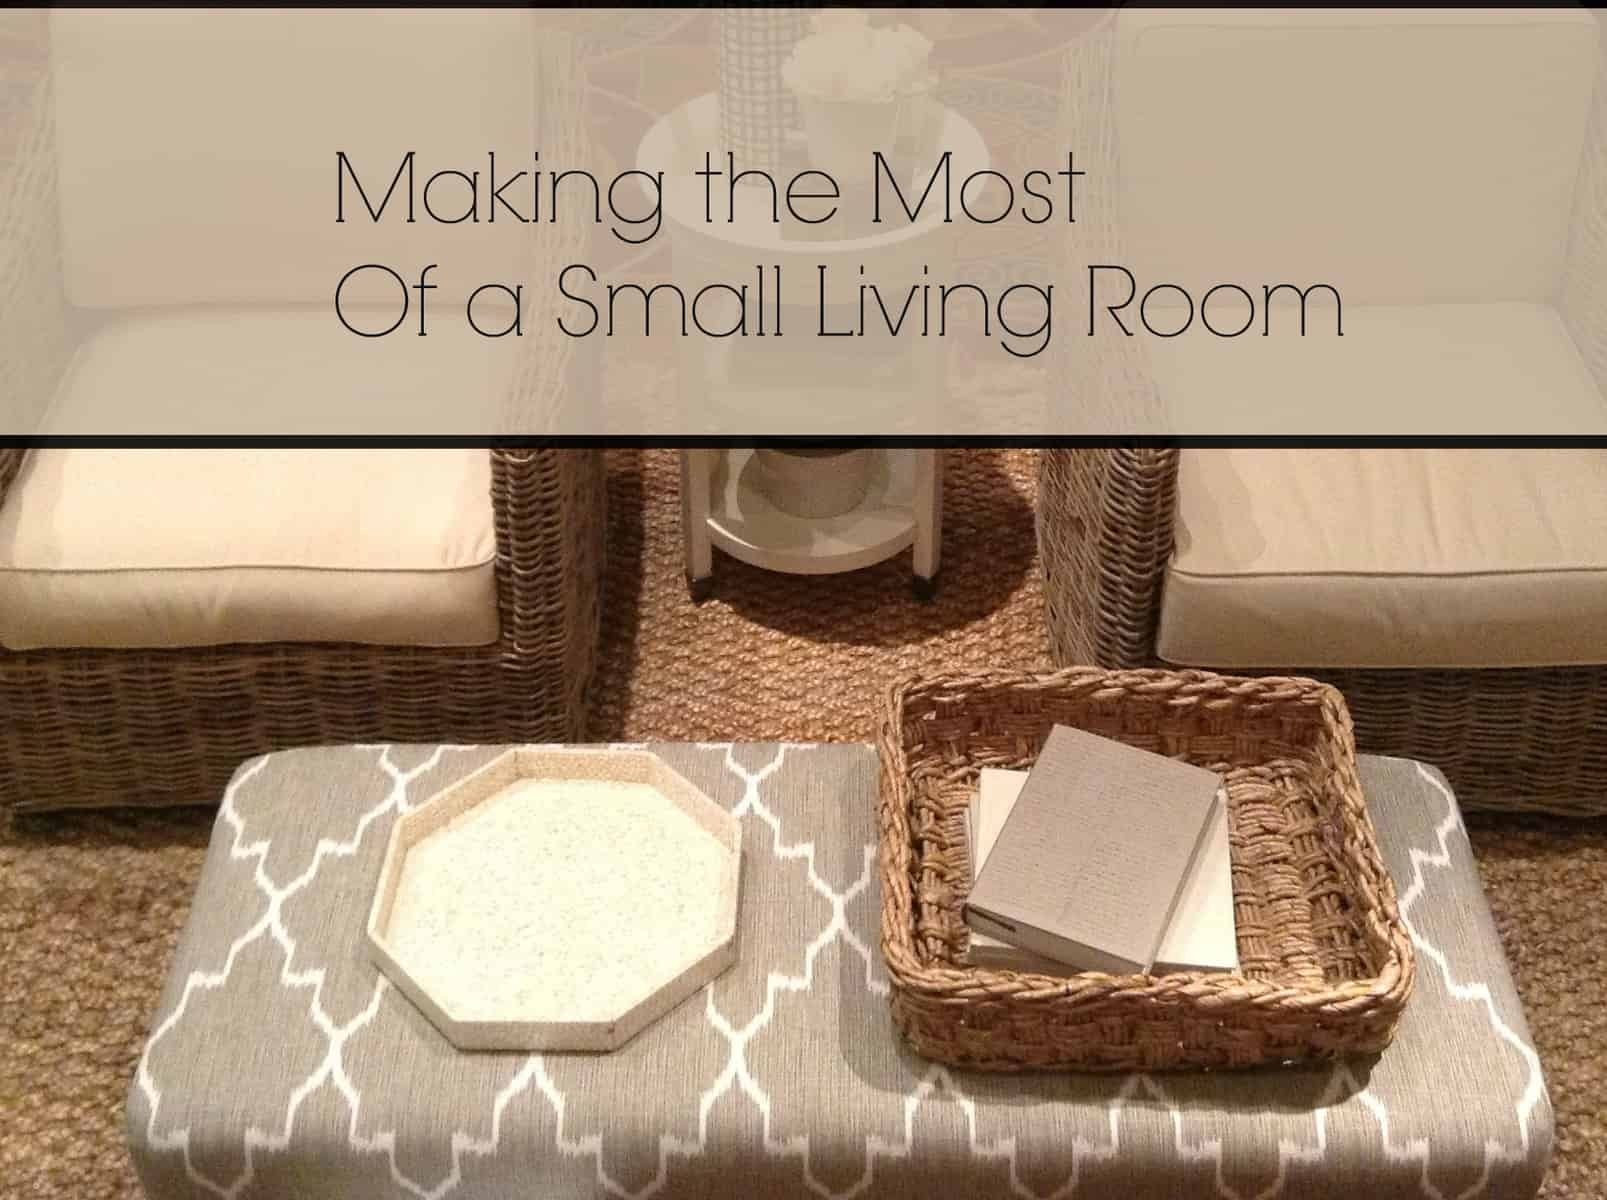 Making the most of a small living room heartwork for Organize a small living room